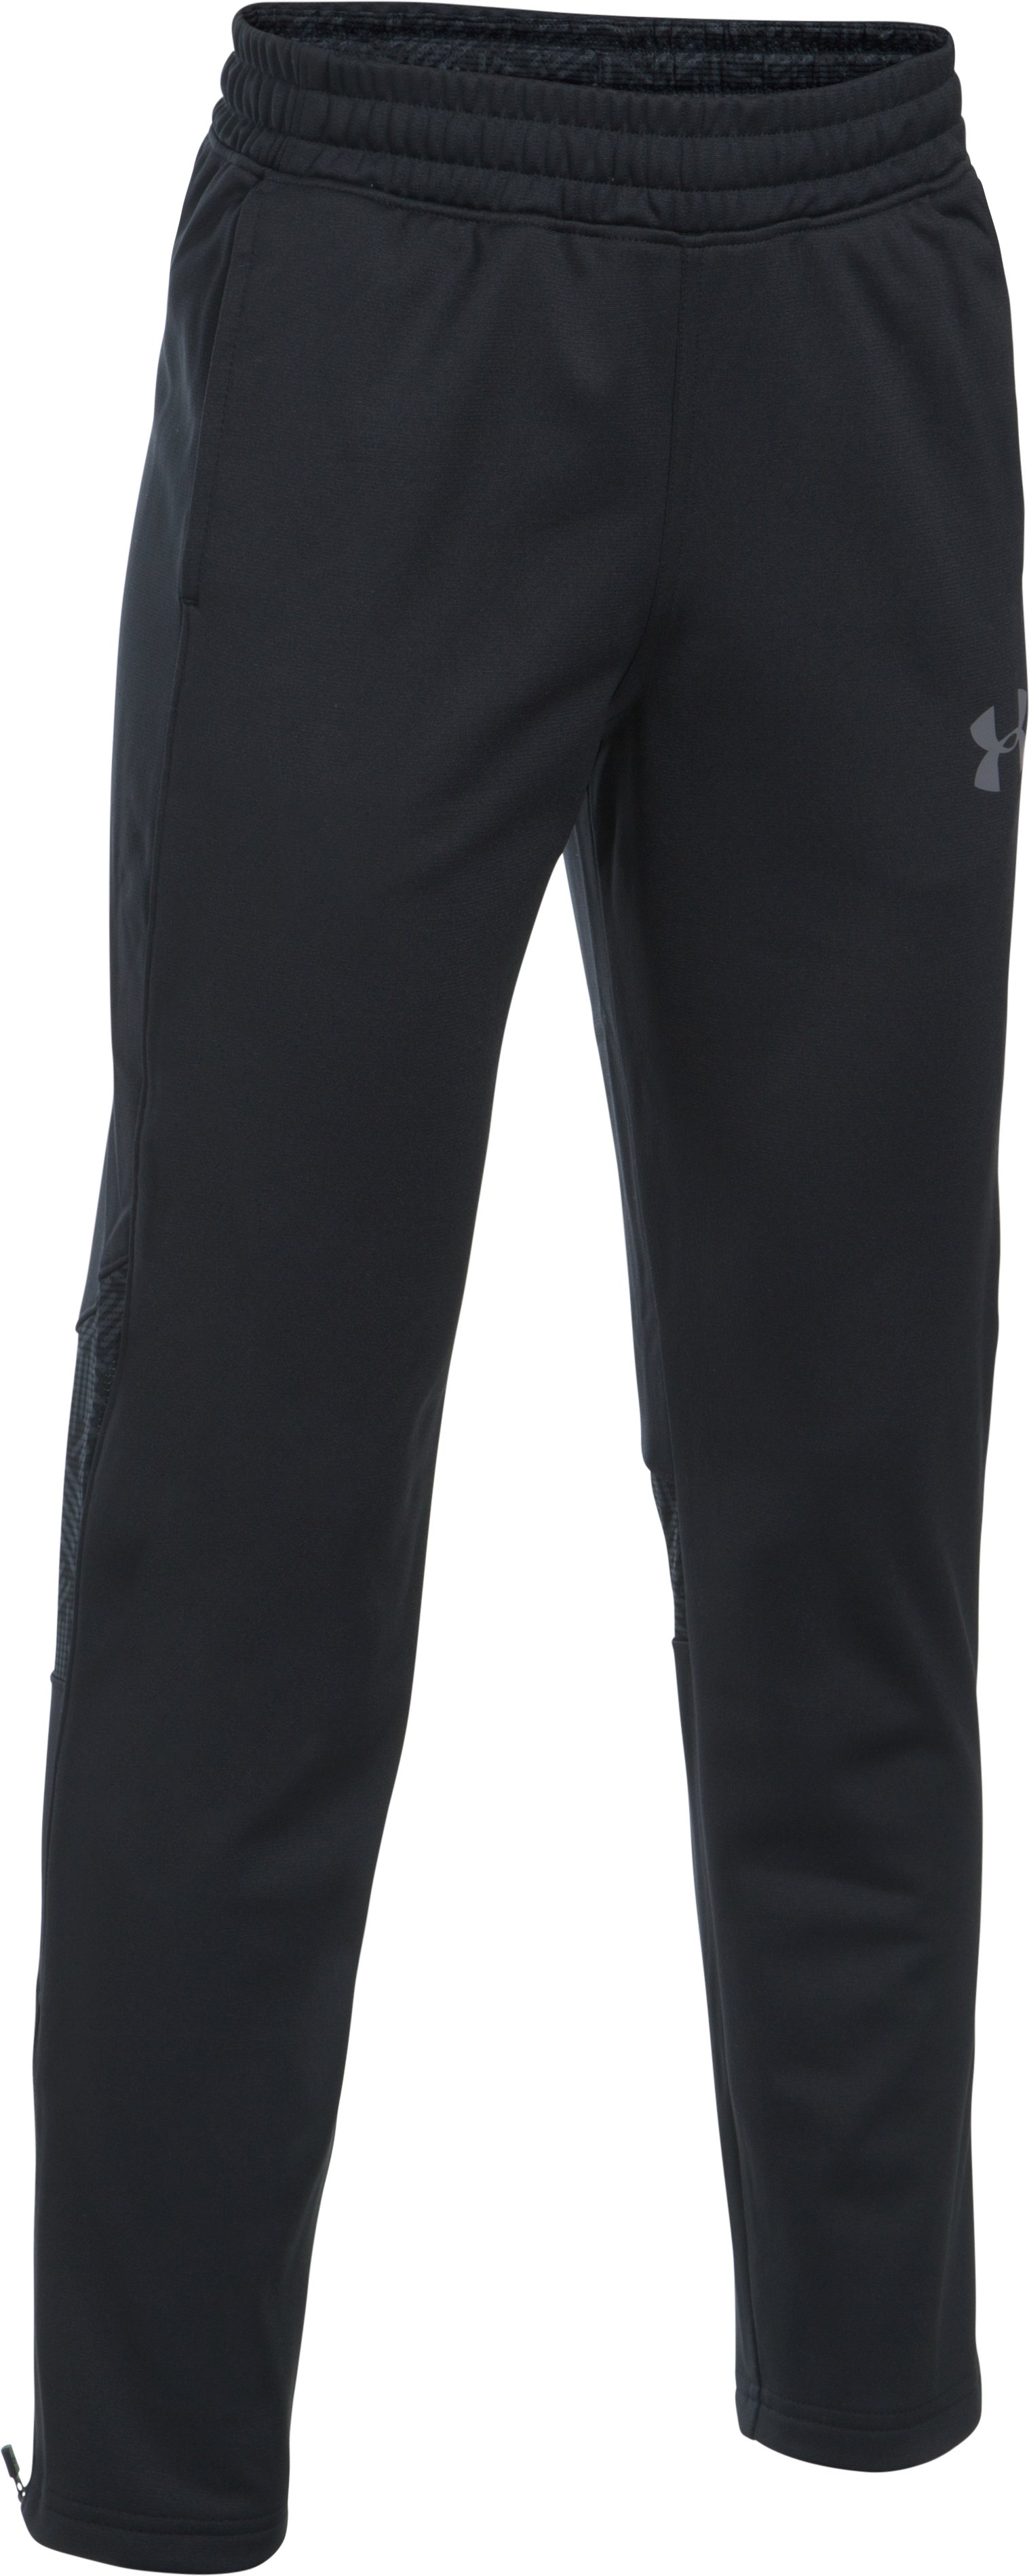 Select Warm-Up Pant, Black , zoomed image